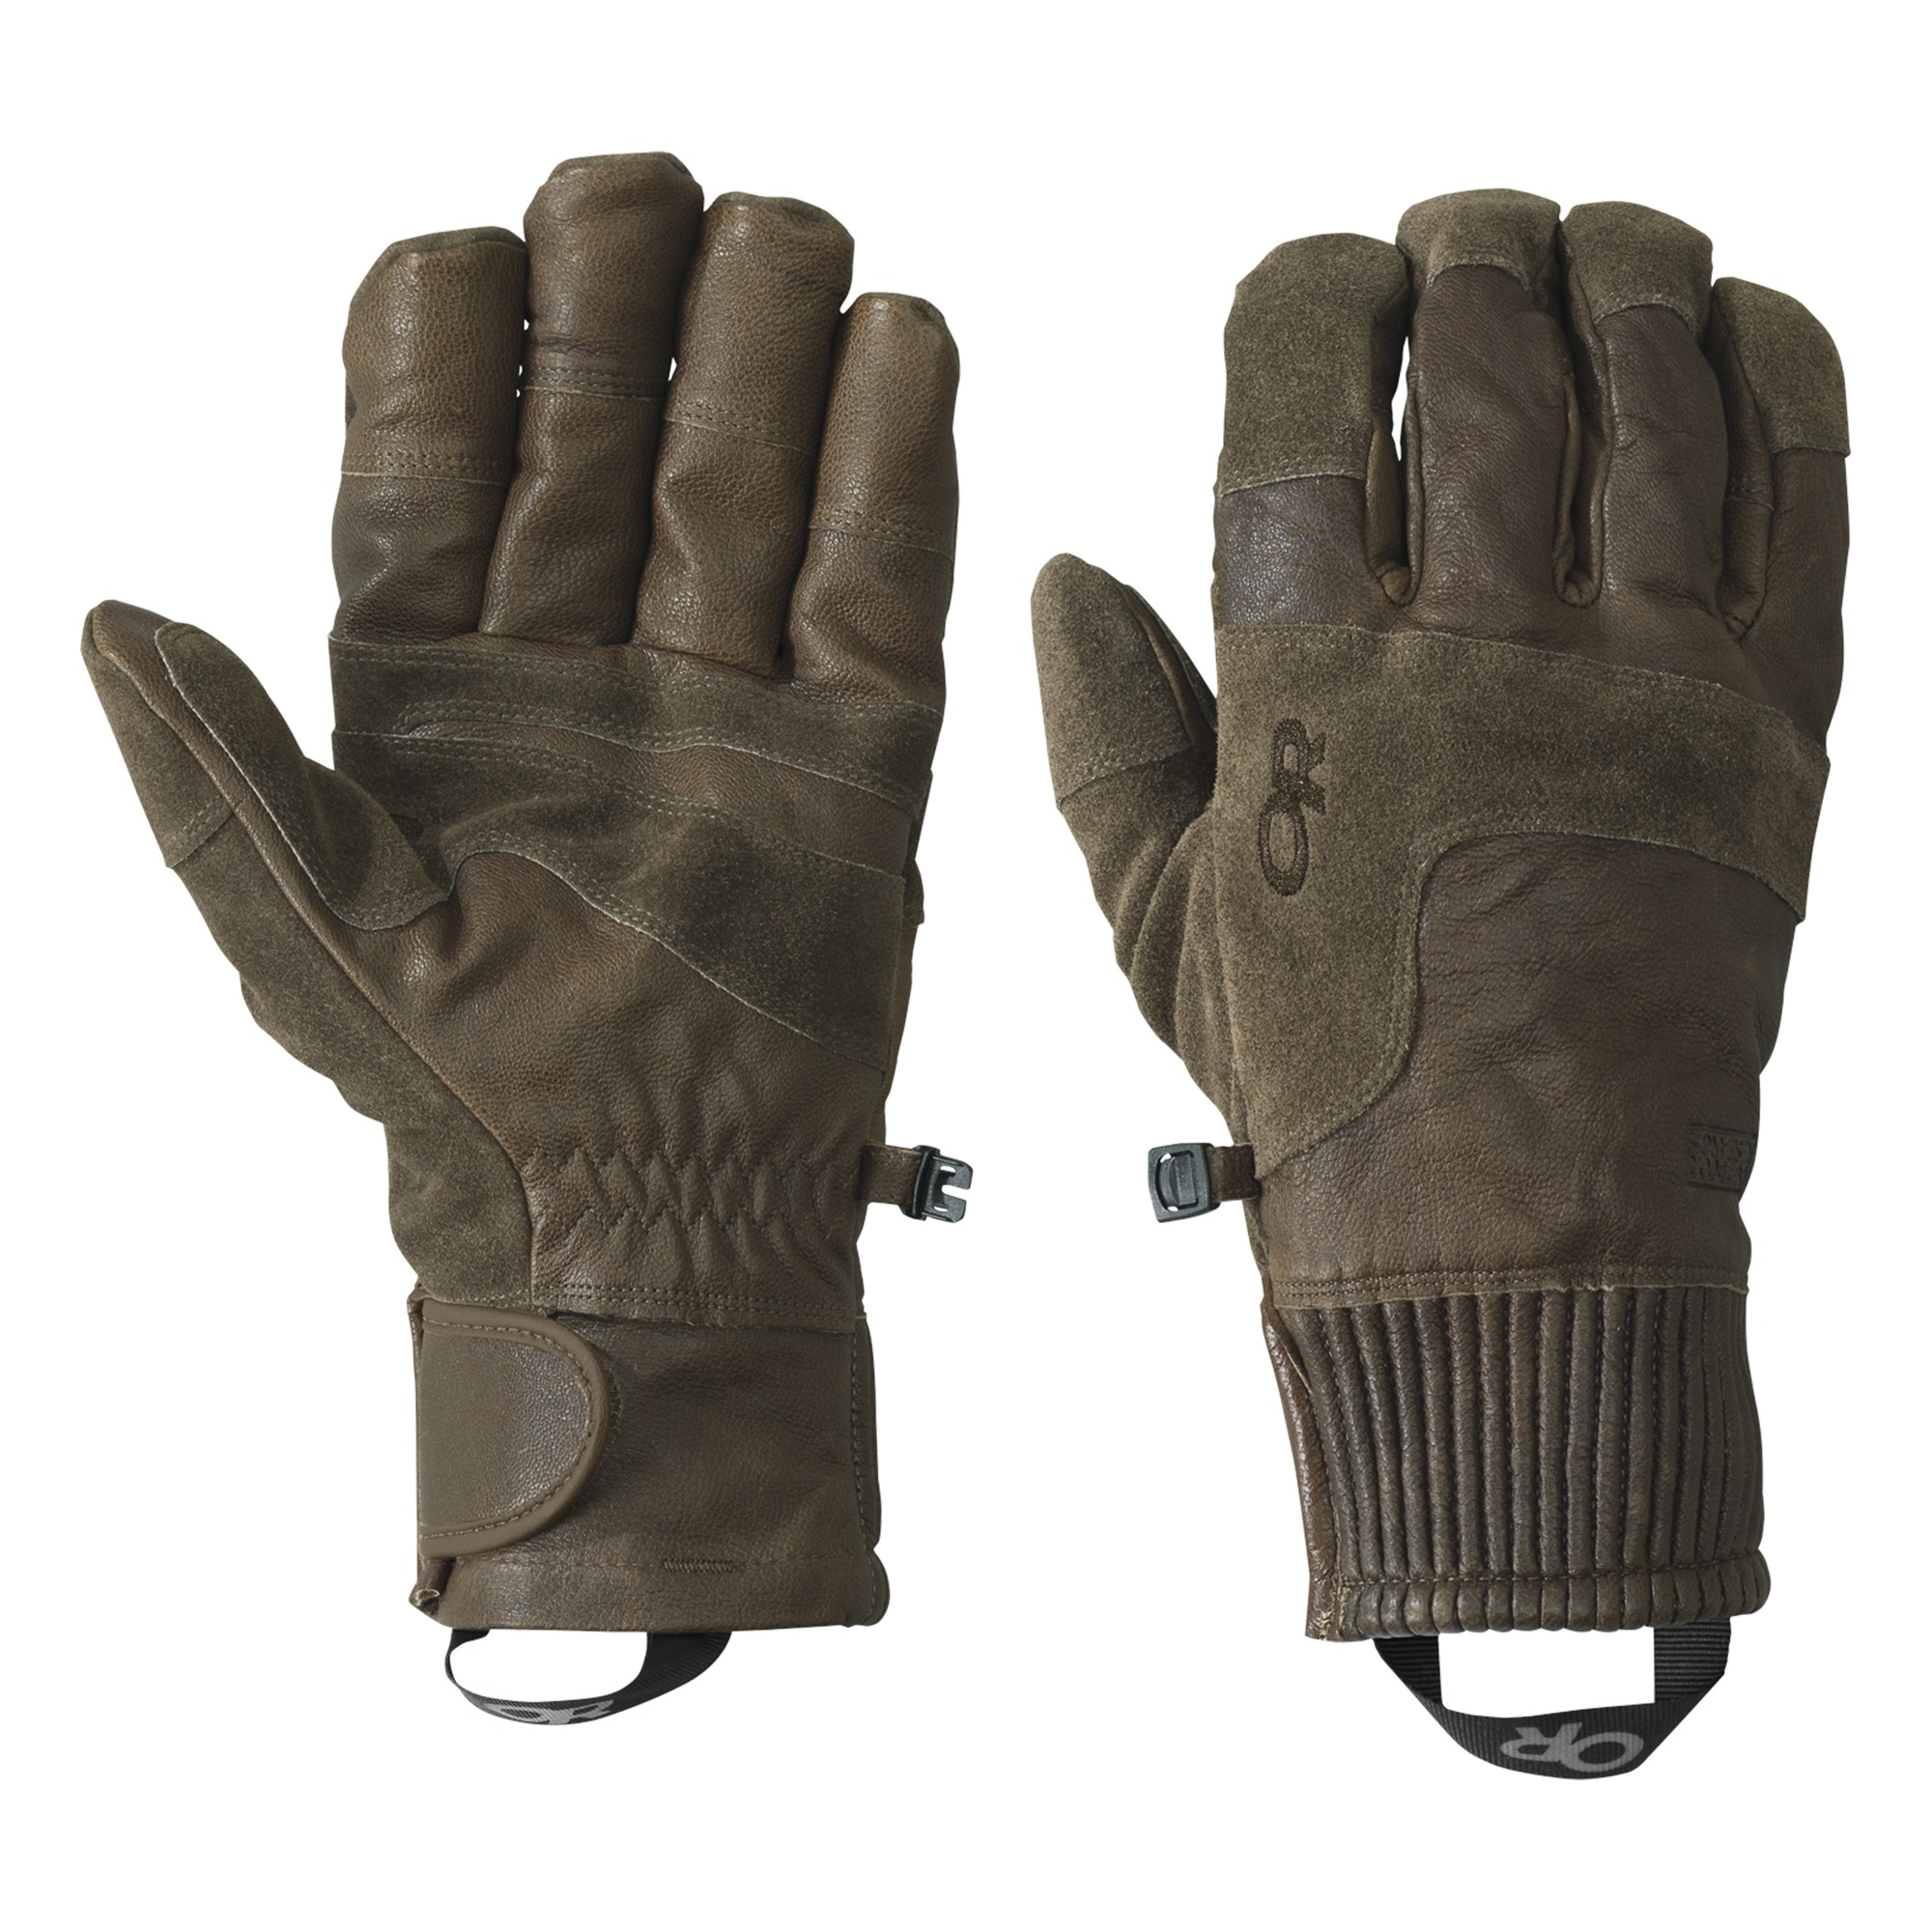 e07b2b083 Men's Rivet Gloves™ - coffee | Outdoor Research